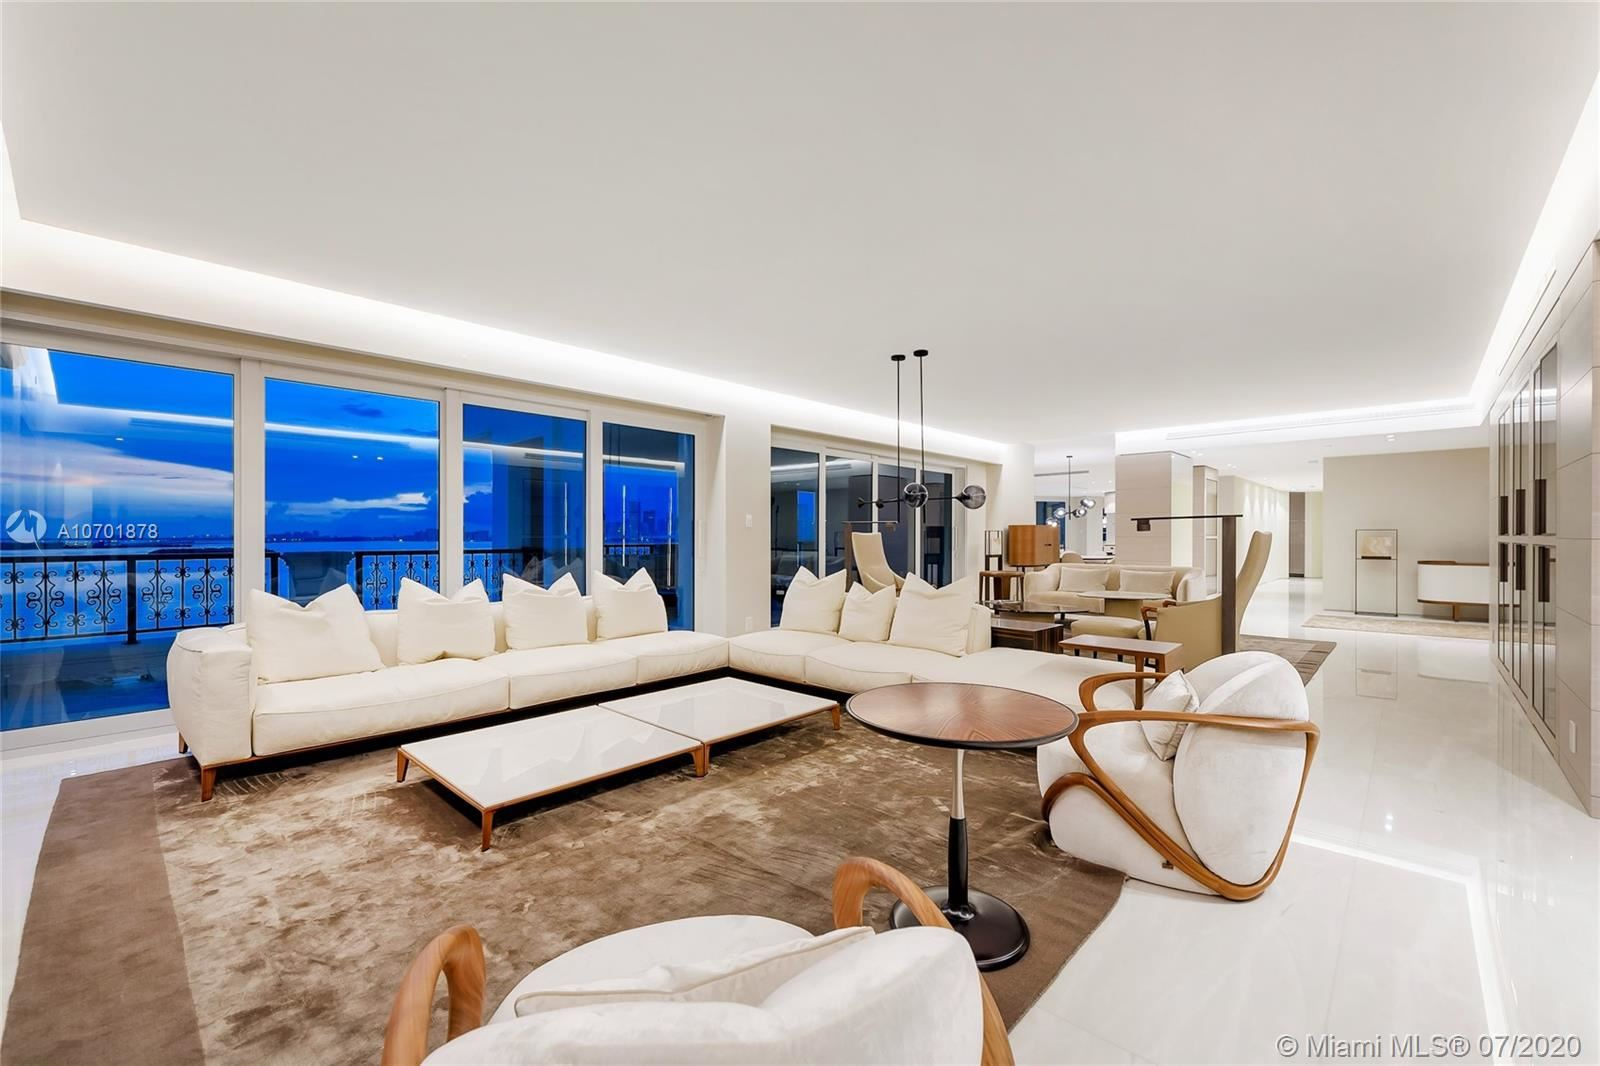 Photo 7 of Listing MLS a10701878 in 5292 Fisher Island Dr #5292 Miami FL 33109